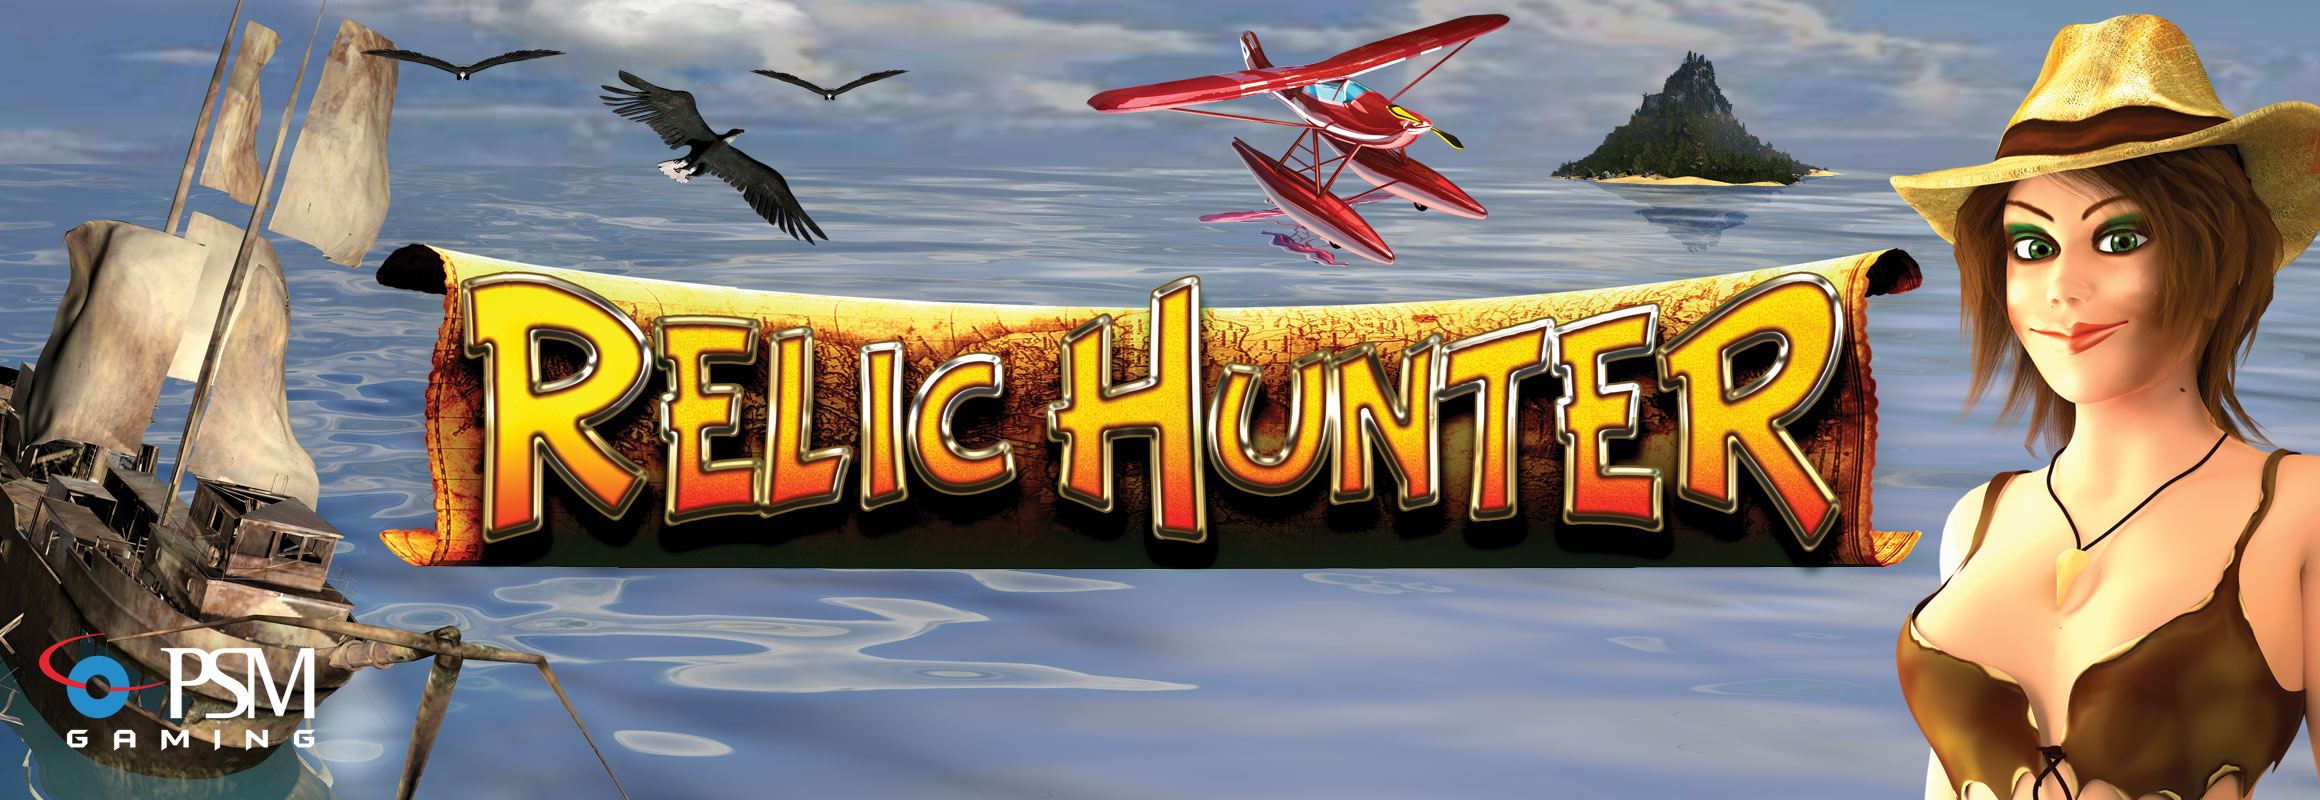 Relic hunter slot machine